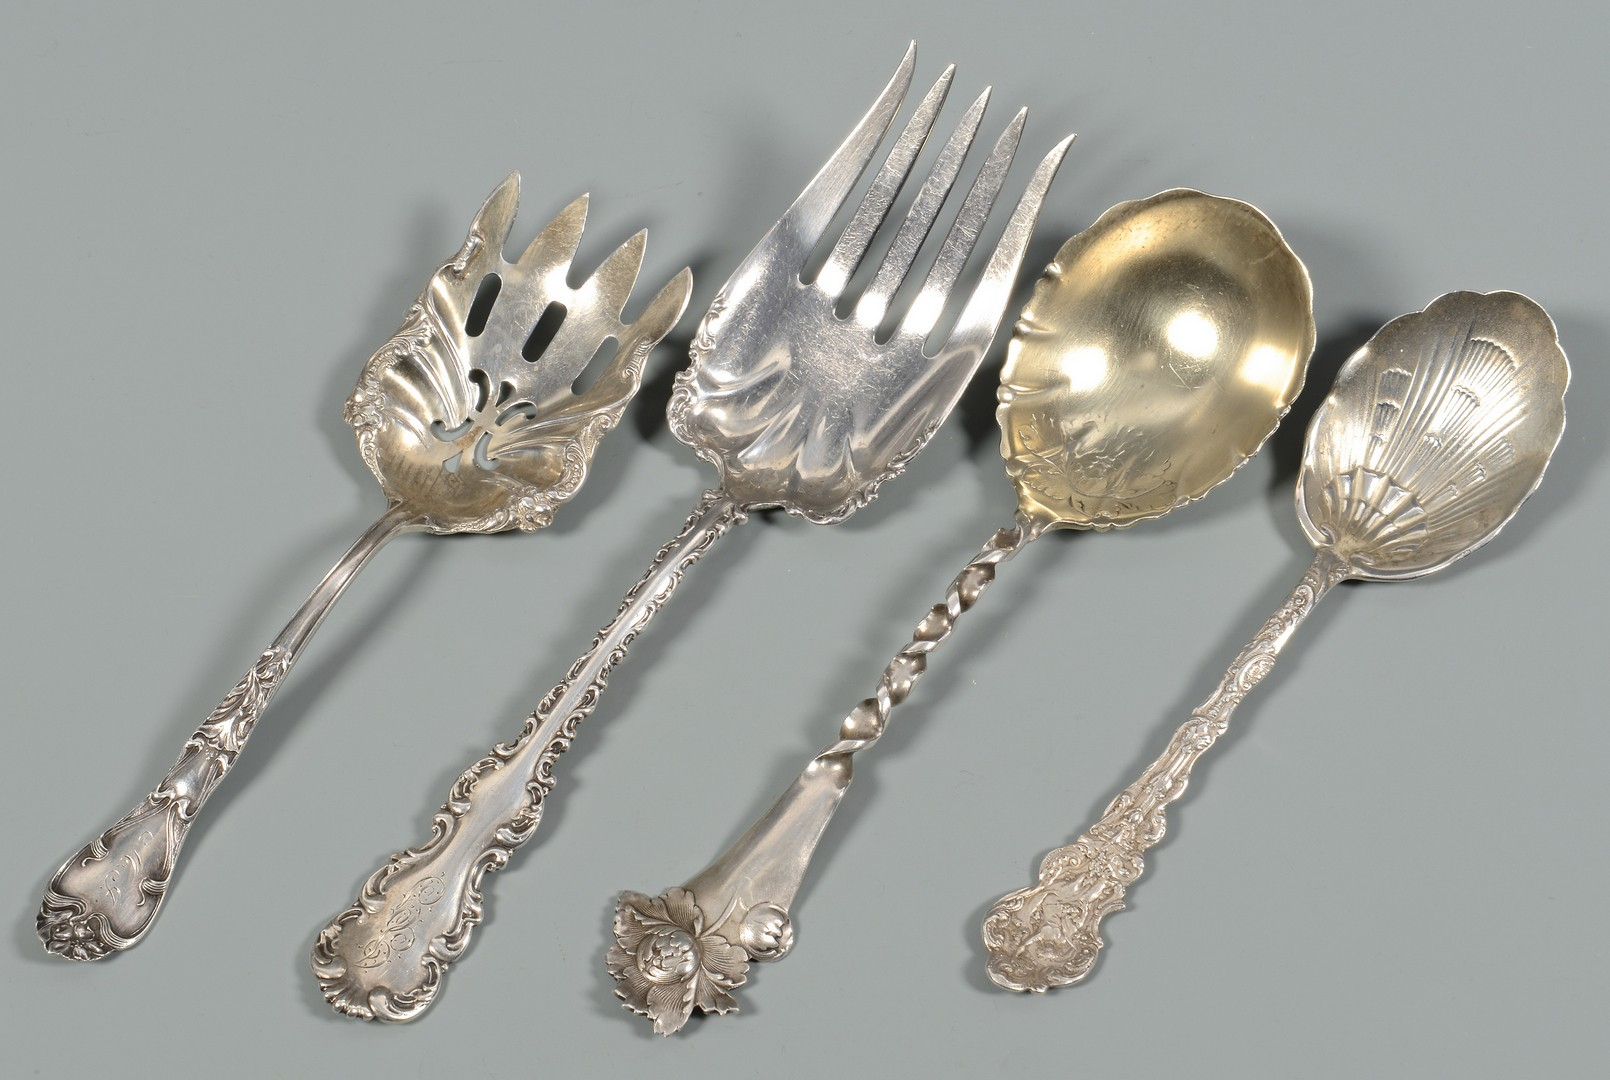 Lot 819: 11 Vintage Sterling Serving pieces